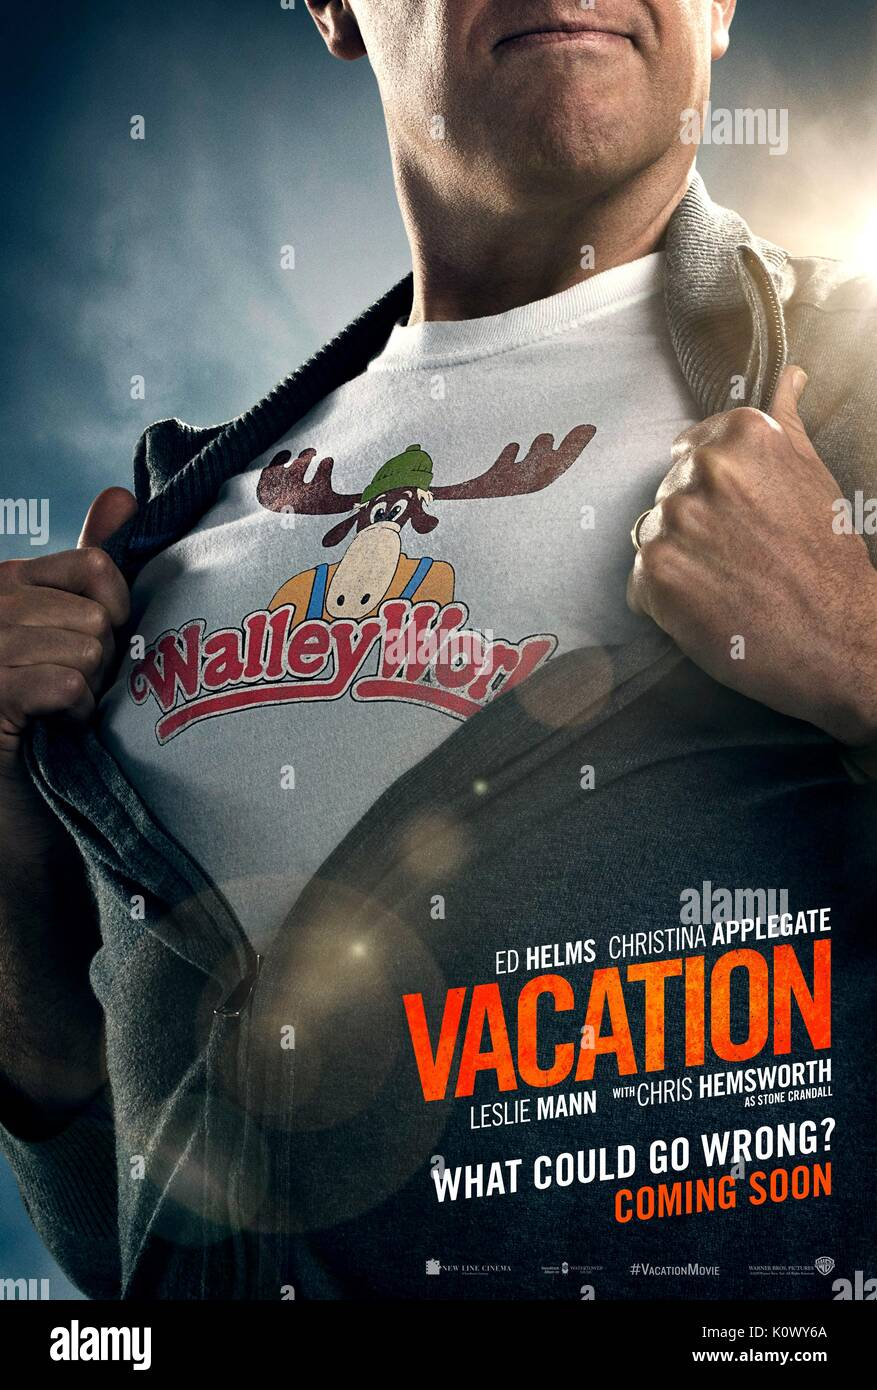 ED HELMS POSTER VACATION (2015) - Stock Image